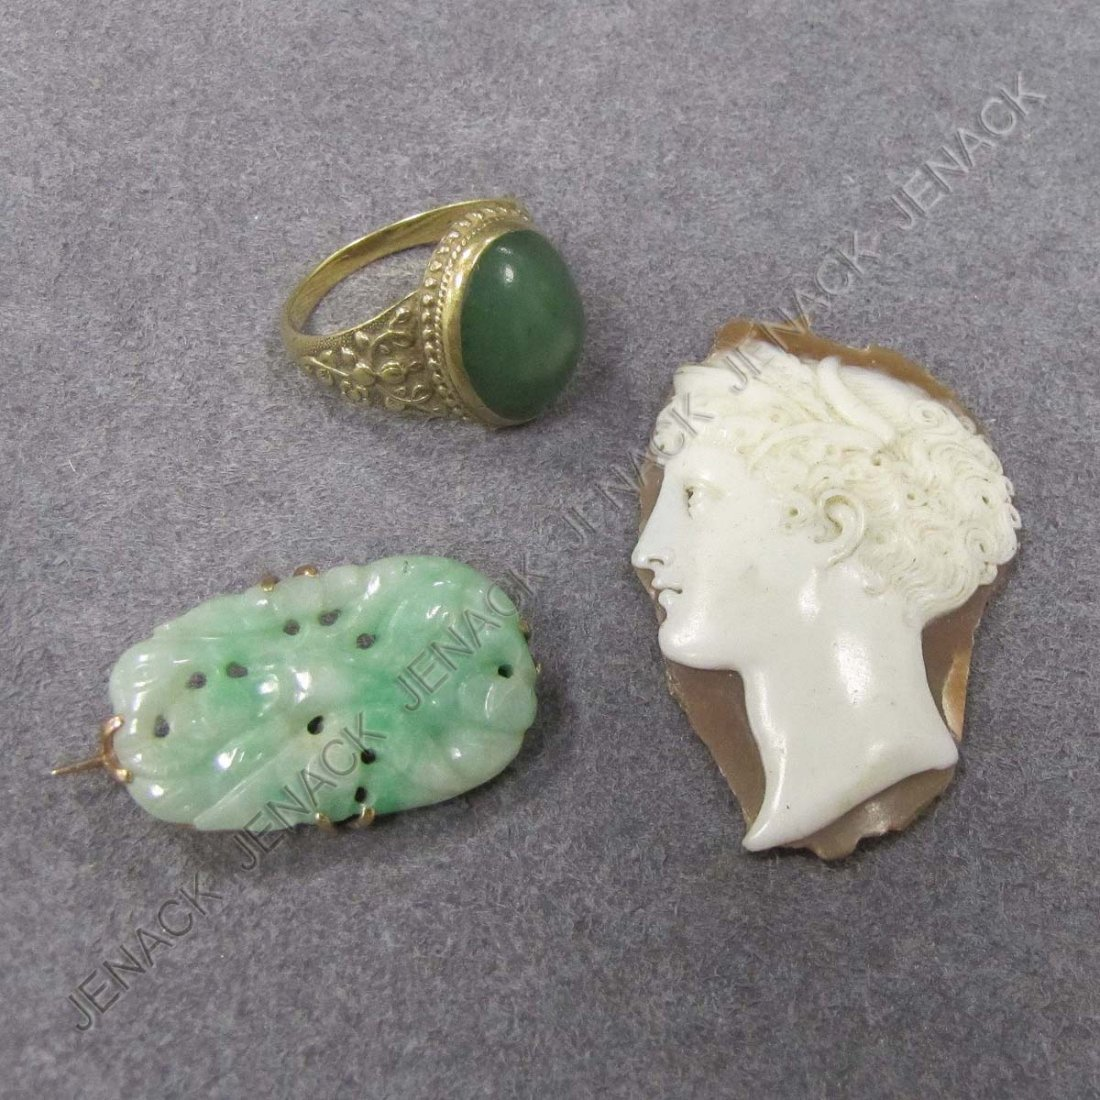 20: LOT (3) VINTAGE YELLOW GOLD (TESTS 14K) JADE PIN